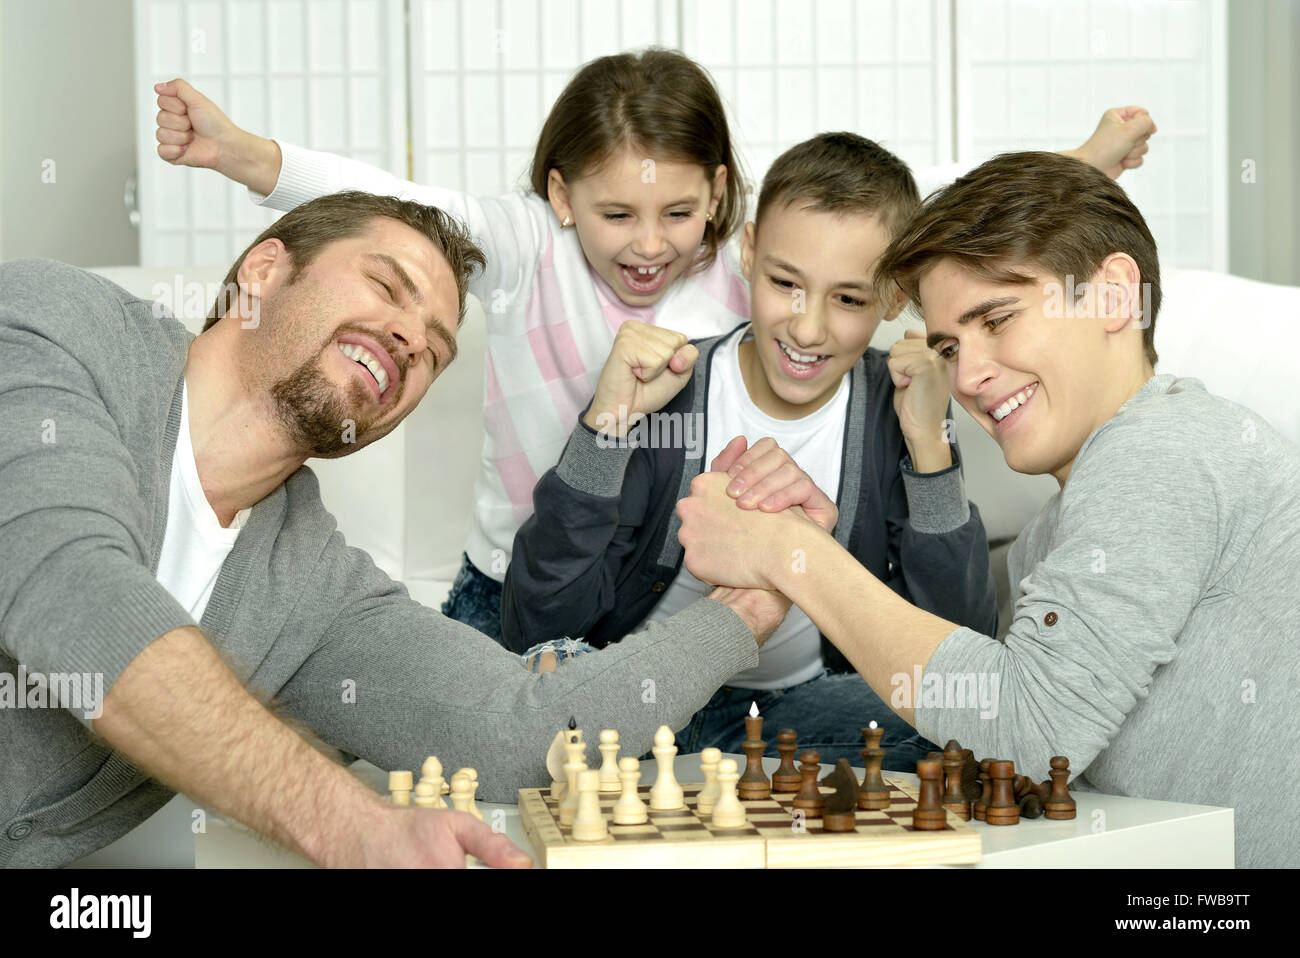 family playing chess at home stock photo 101667464 alamy rh alamy com chase at home log in cheese at home